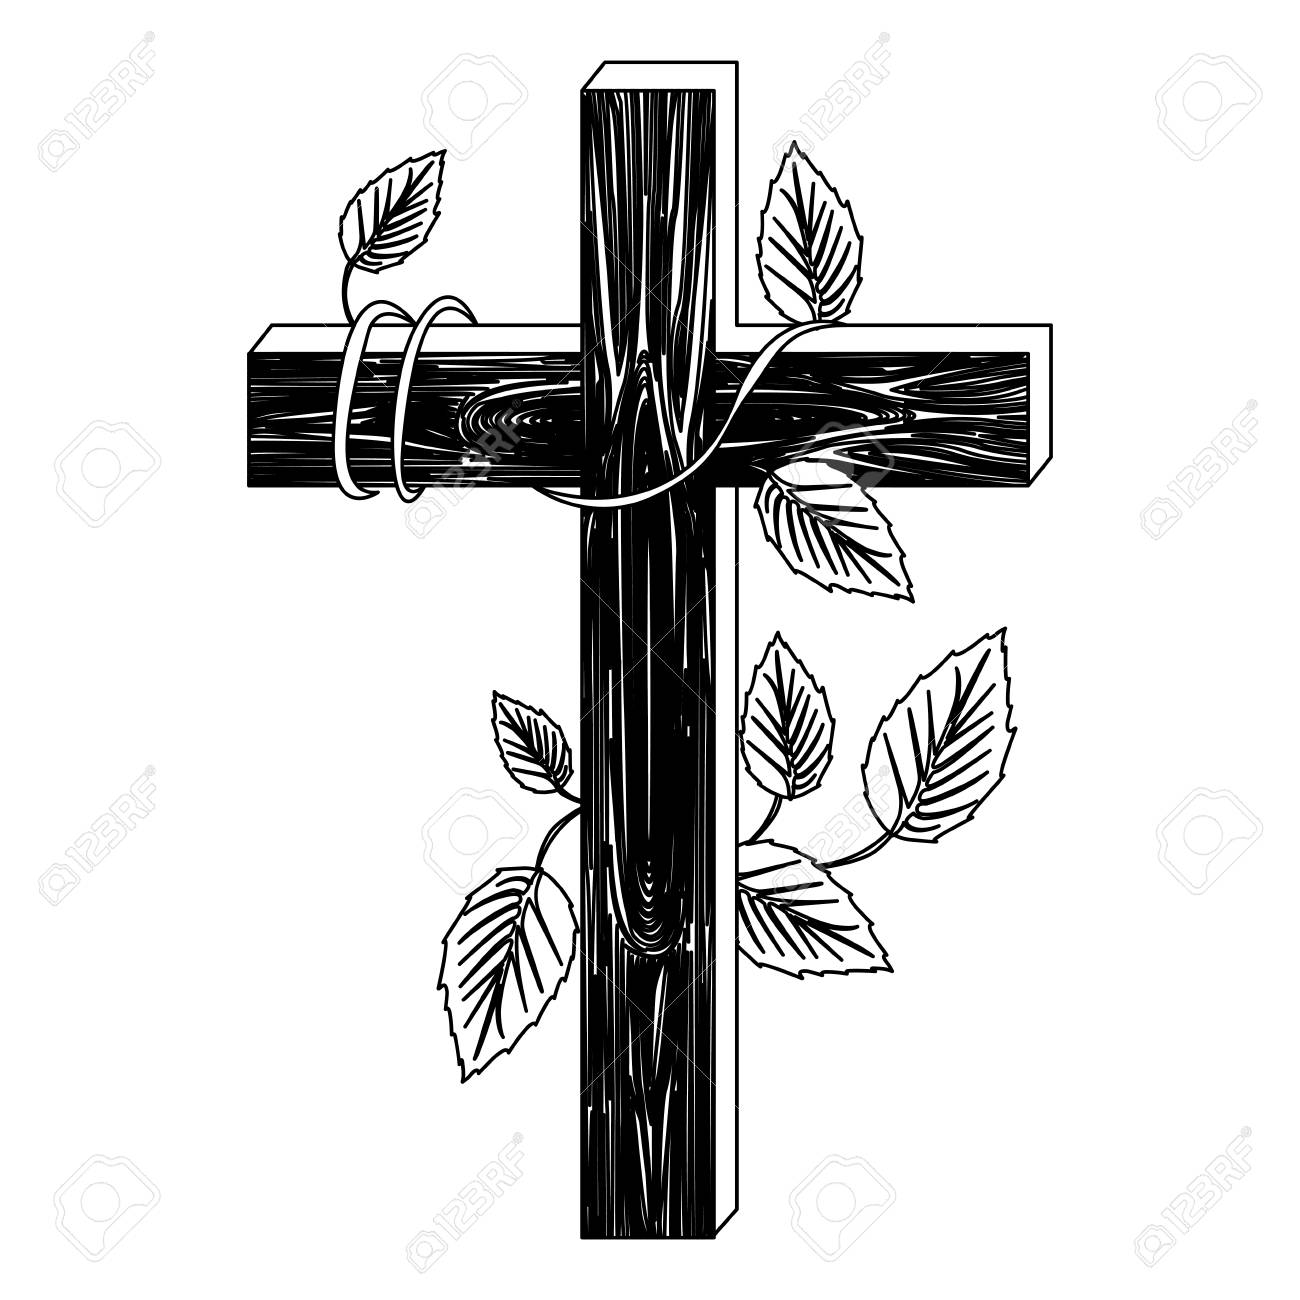 Black Silhouette Of Wooden Cross And Creeper Plant